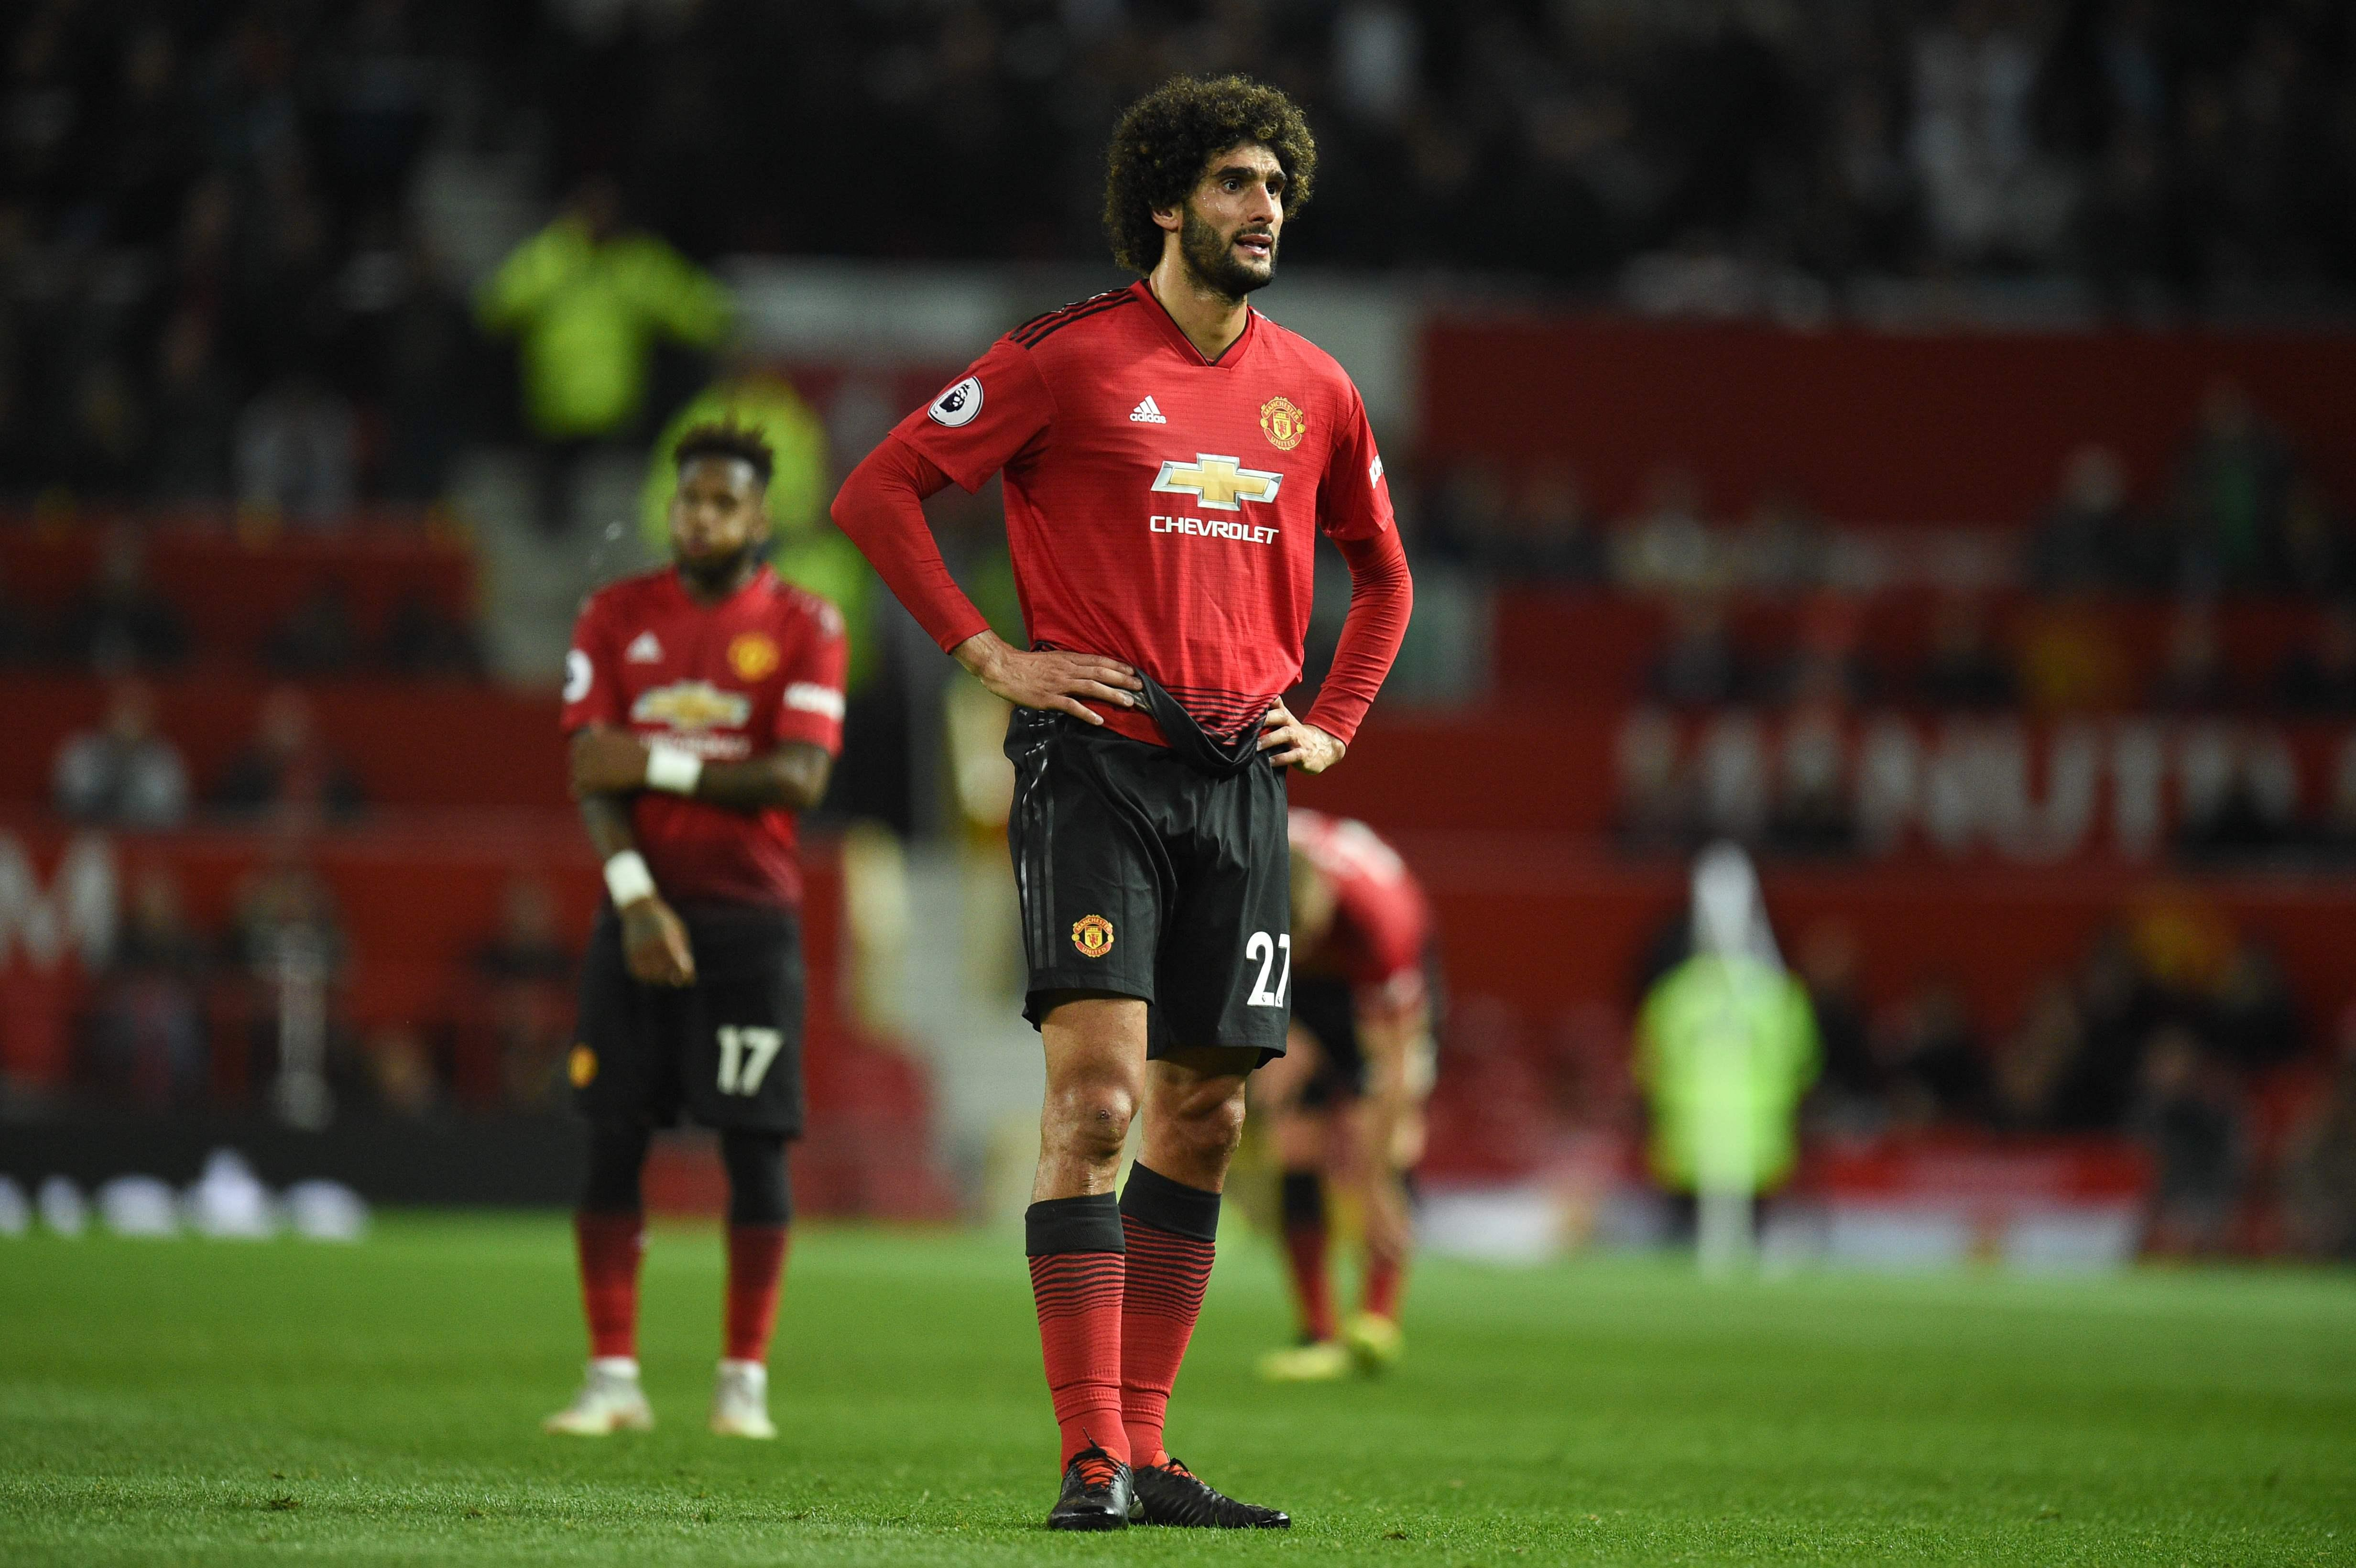 A frustrating night at Old Trafford